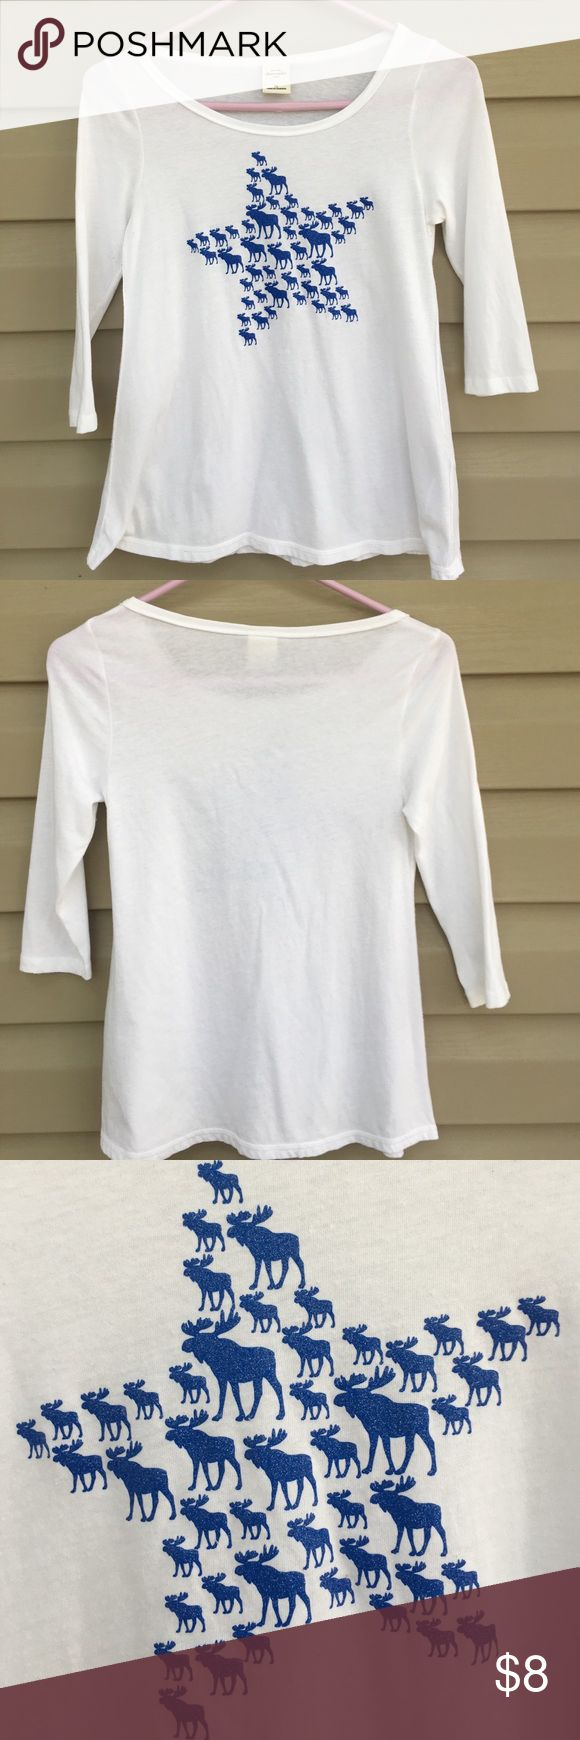 Abercrombie girls shirt Nice girls 3/4 length white shirt. Glitter moose in shape of star on front. 60% cotton 40% polyester no stains or holes abercrombie kids Shirts & Tops